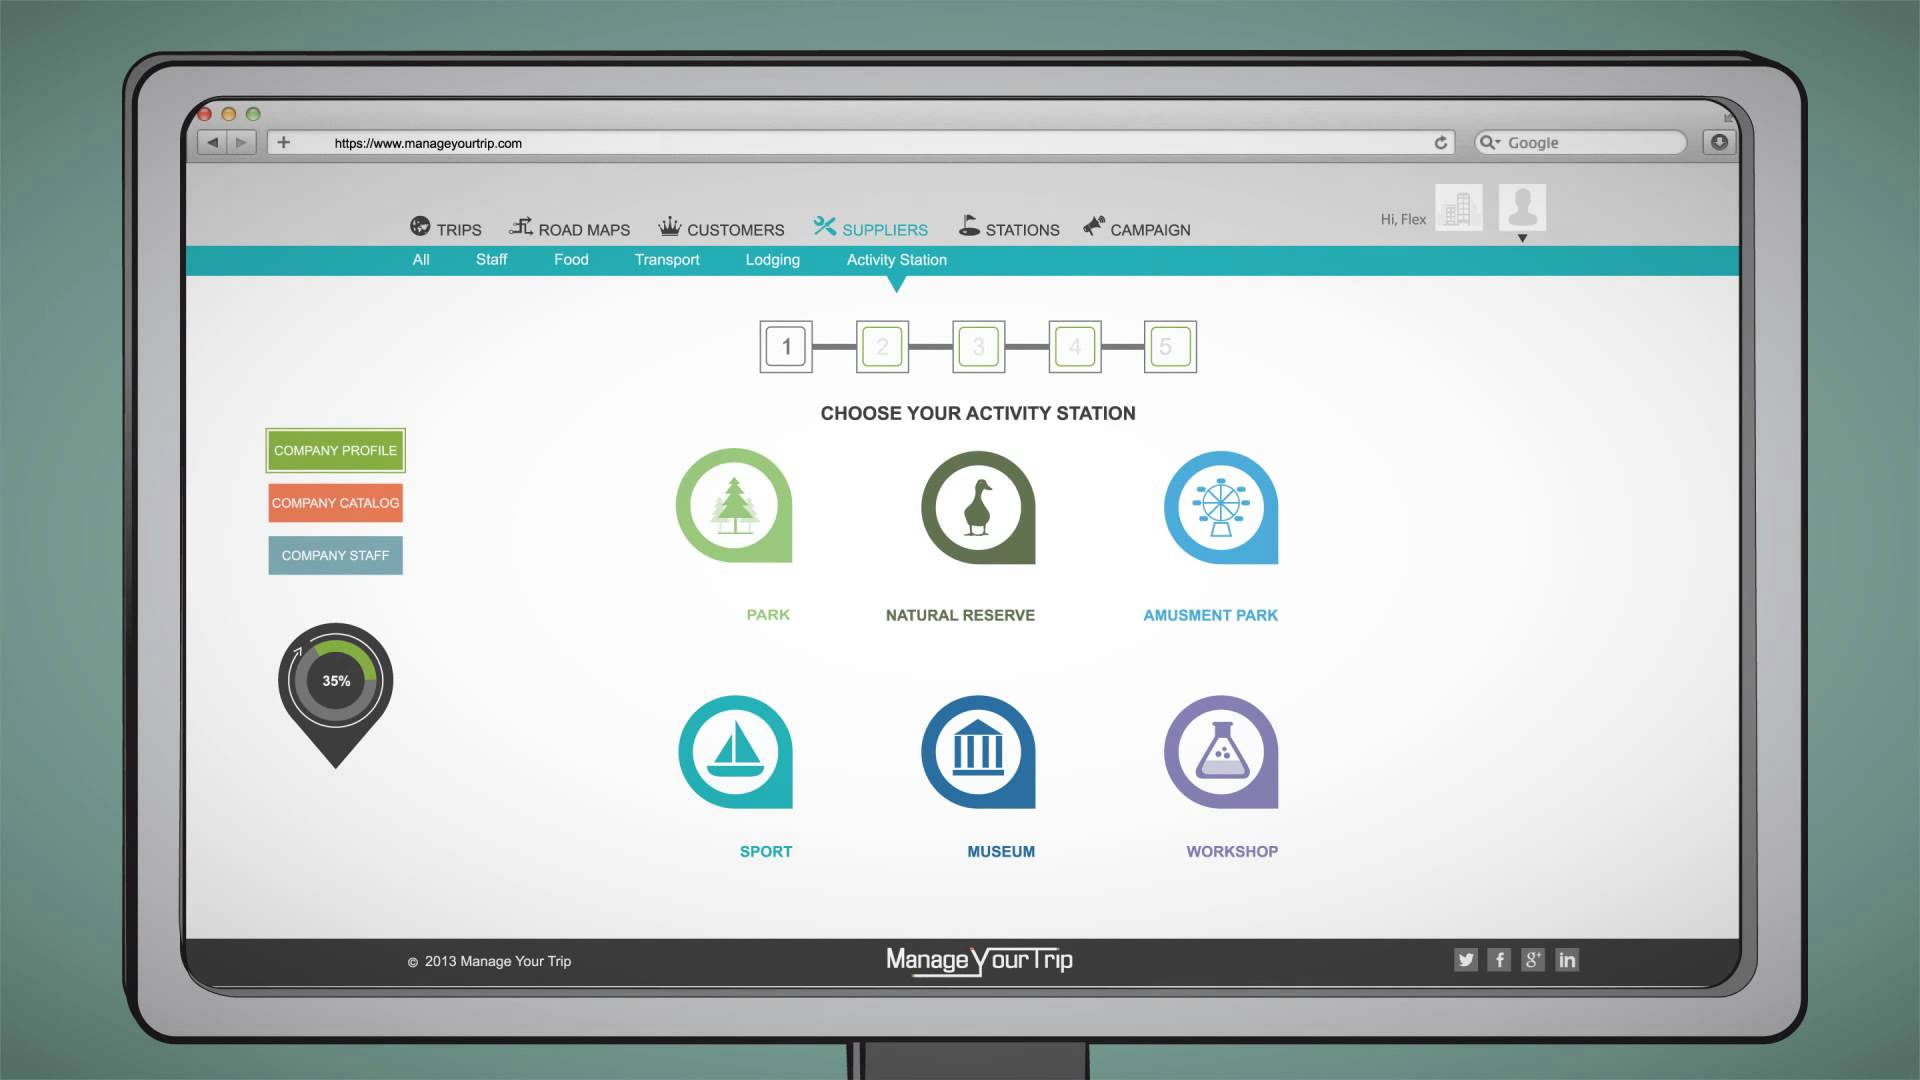 MYT SaaS screenshot: Activity Station allows users to select the access and activity type